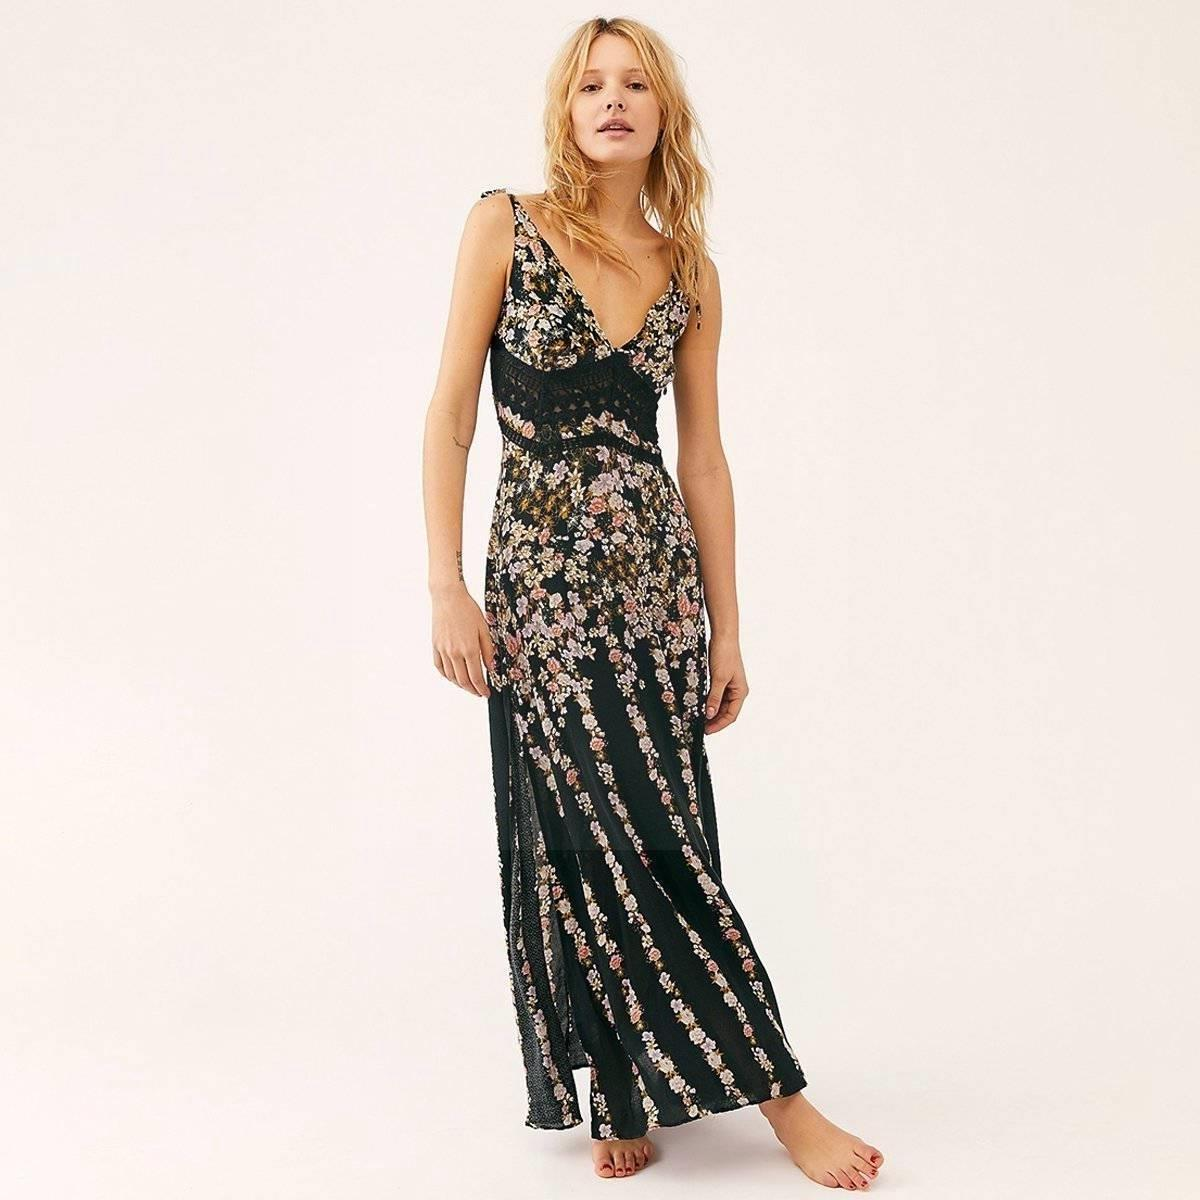 Cheap Chic Hippie Dress finely tailored